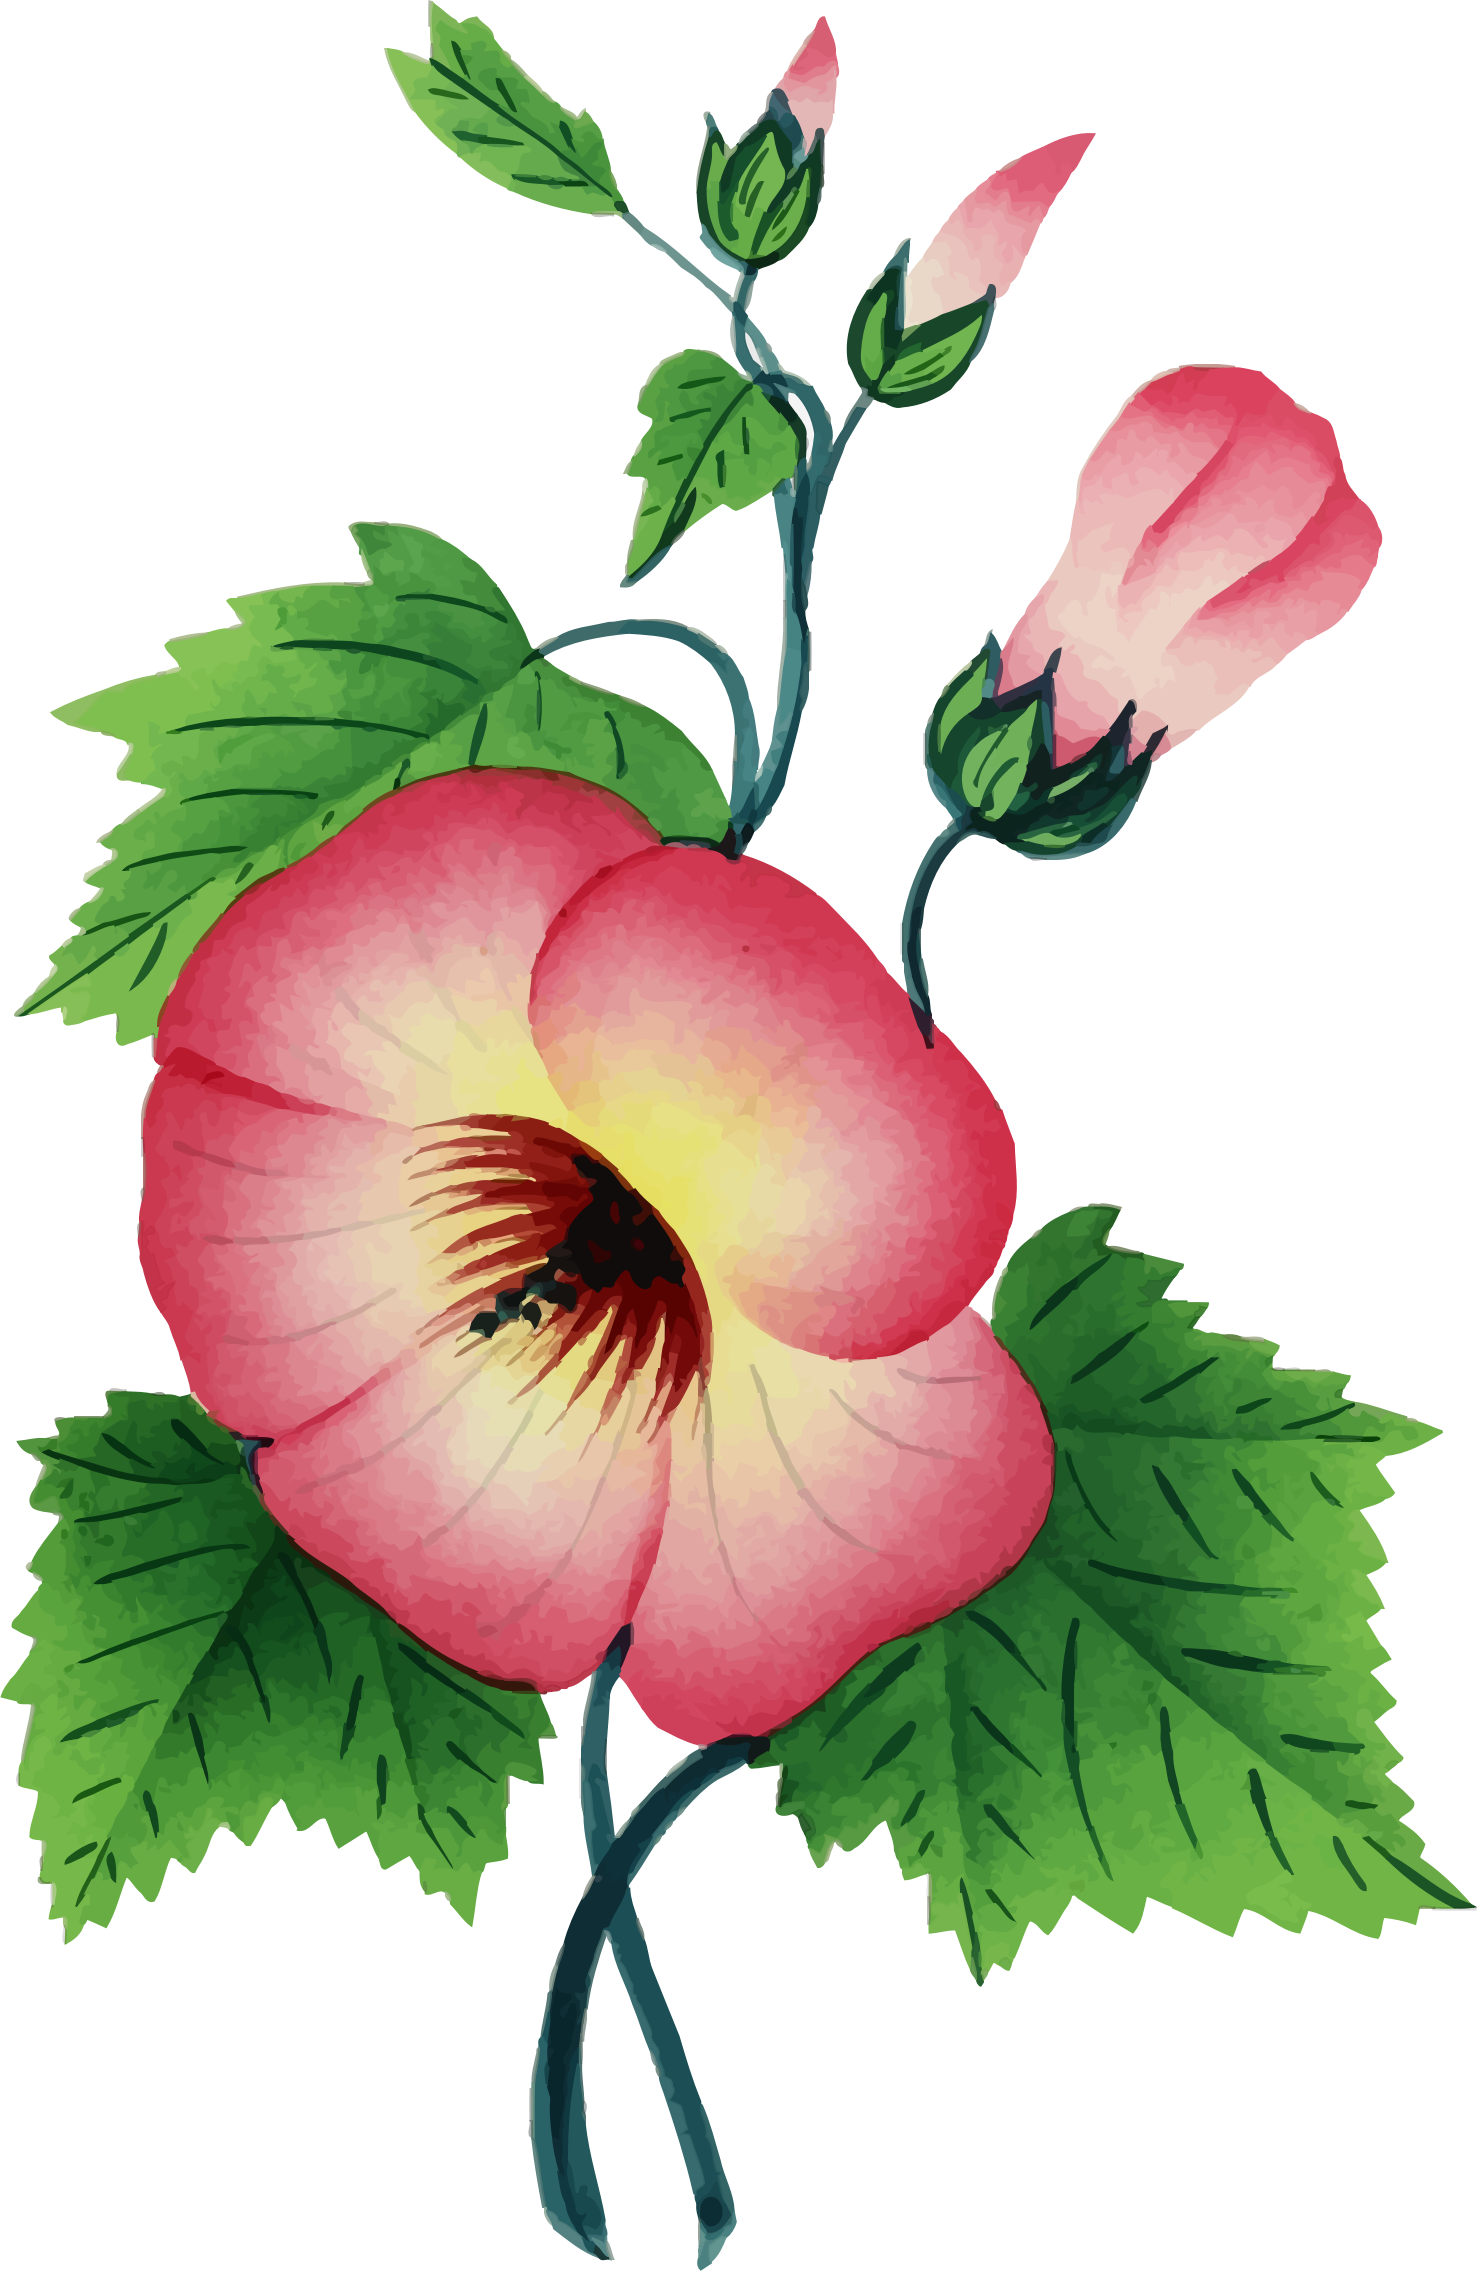 Flower Illustration 3 by GDJ